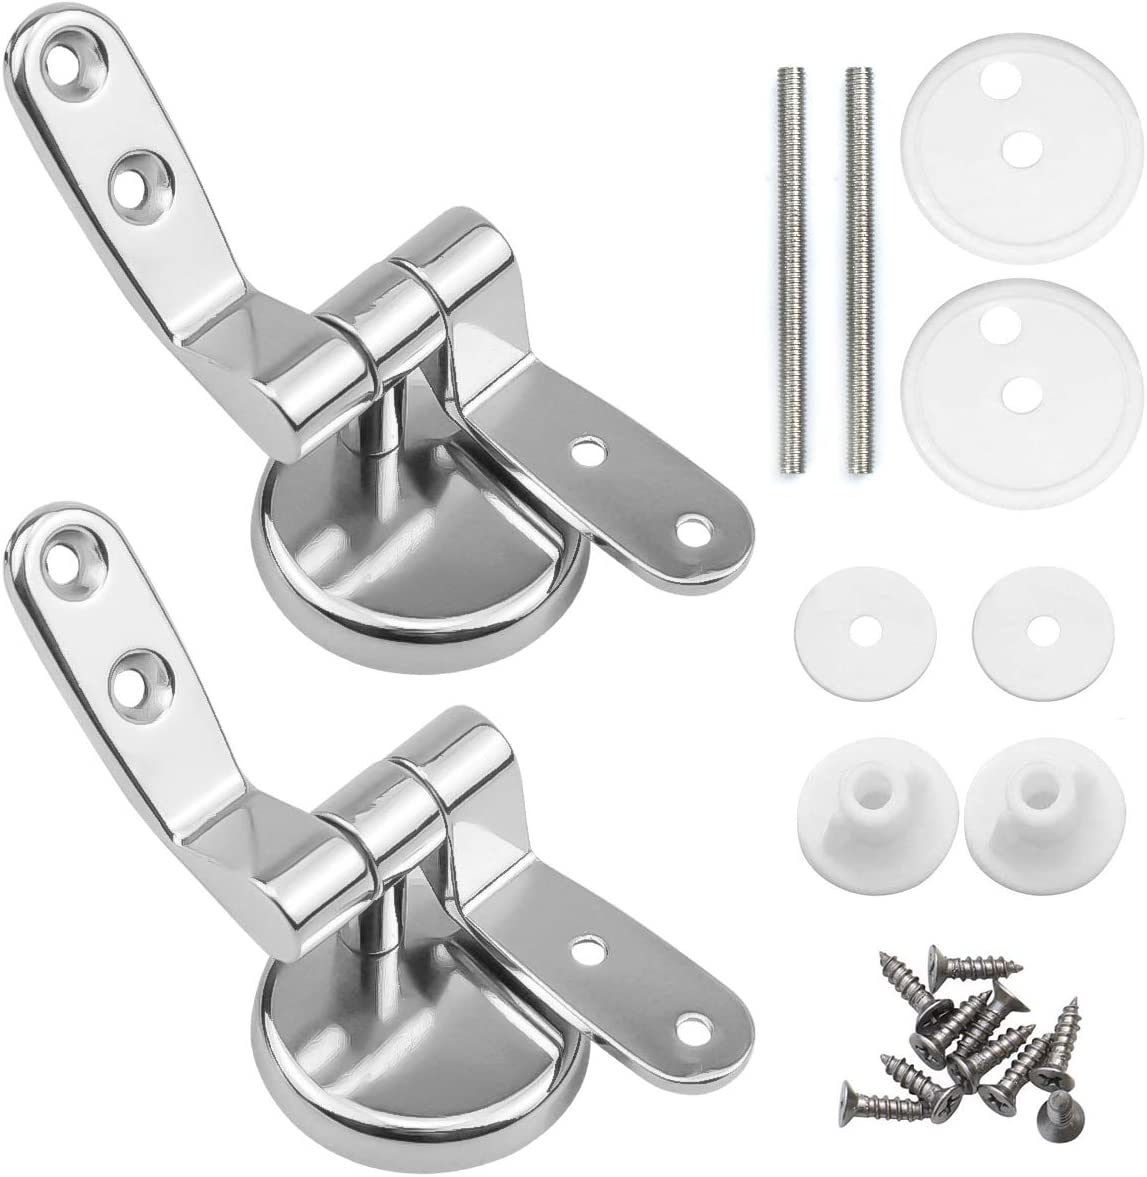 Natuce Toilet Seat Hinges Fittings, Chrome Finished Toilet Seat Fittings and Fixtures Perfect for Most Wooden | Resin | MDF Toilet Seats